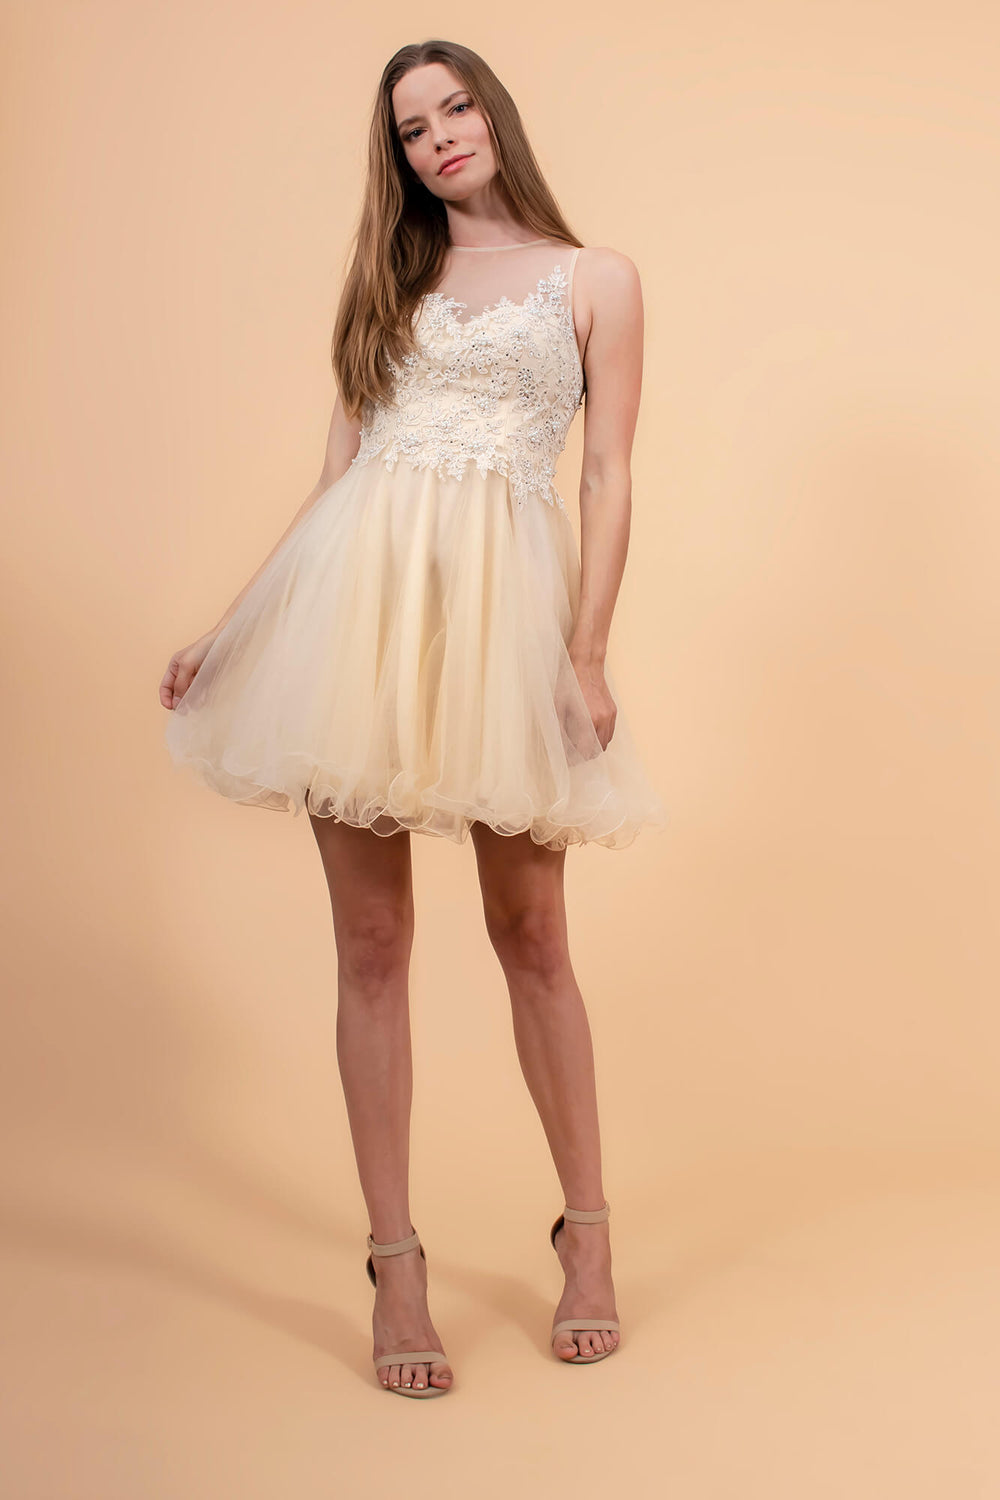 Short Prom Dress Formal Homecoming - The Dress Outlet Champagne